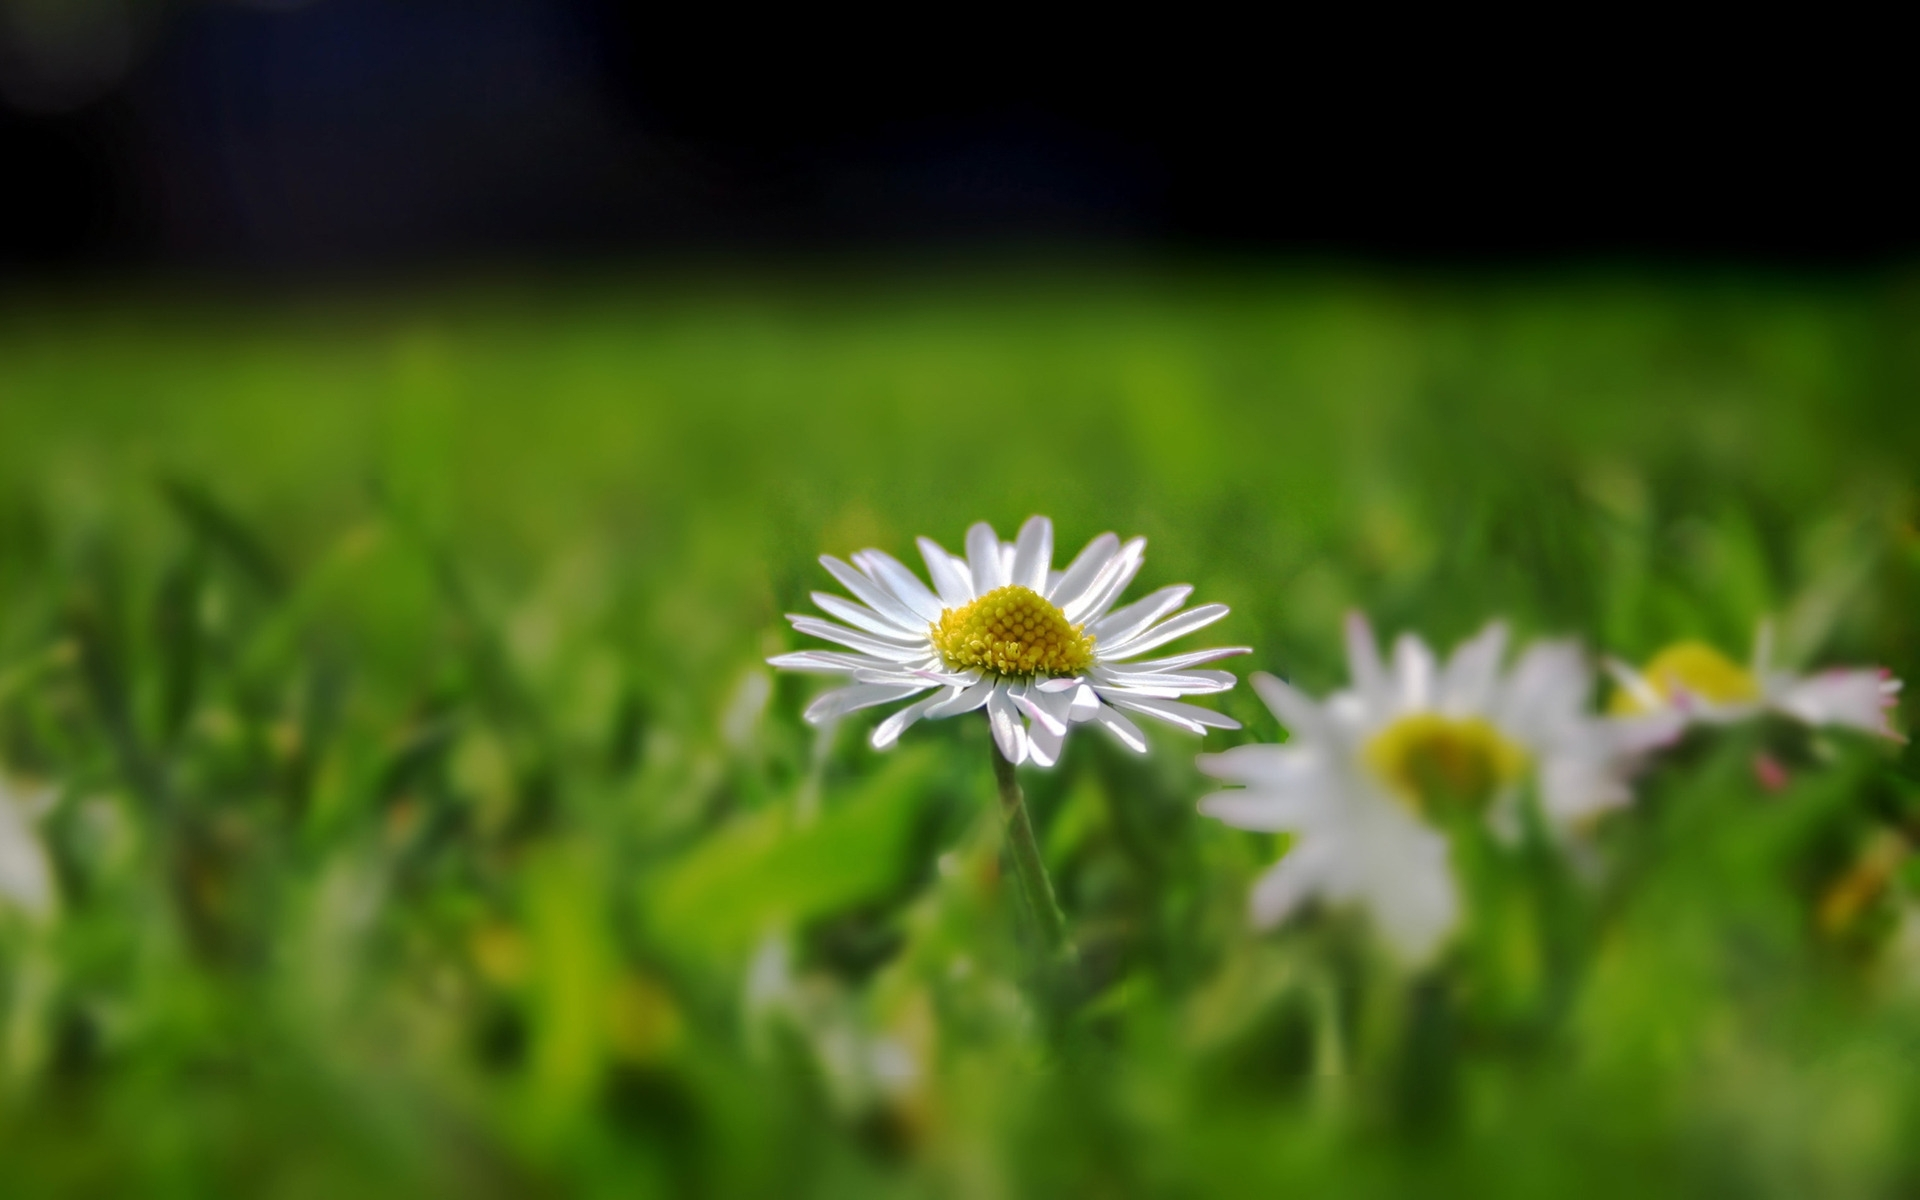 48420 download wallpaper Plants, Flowers, Camomile screensavers and pictures for free